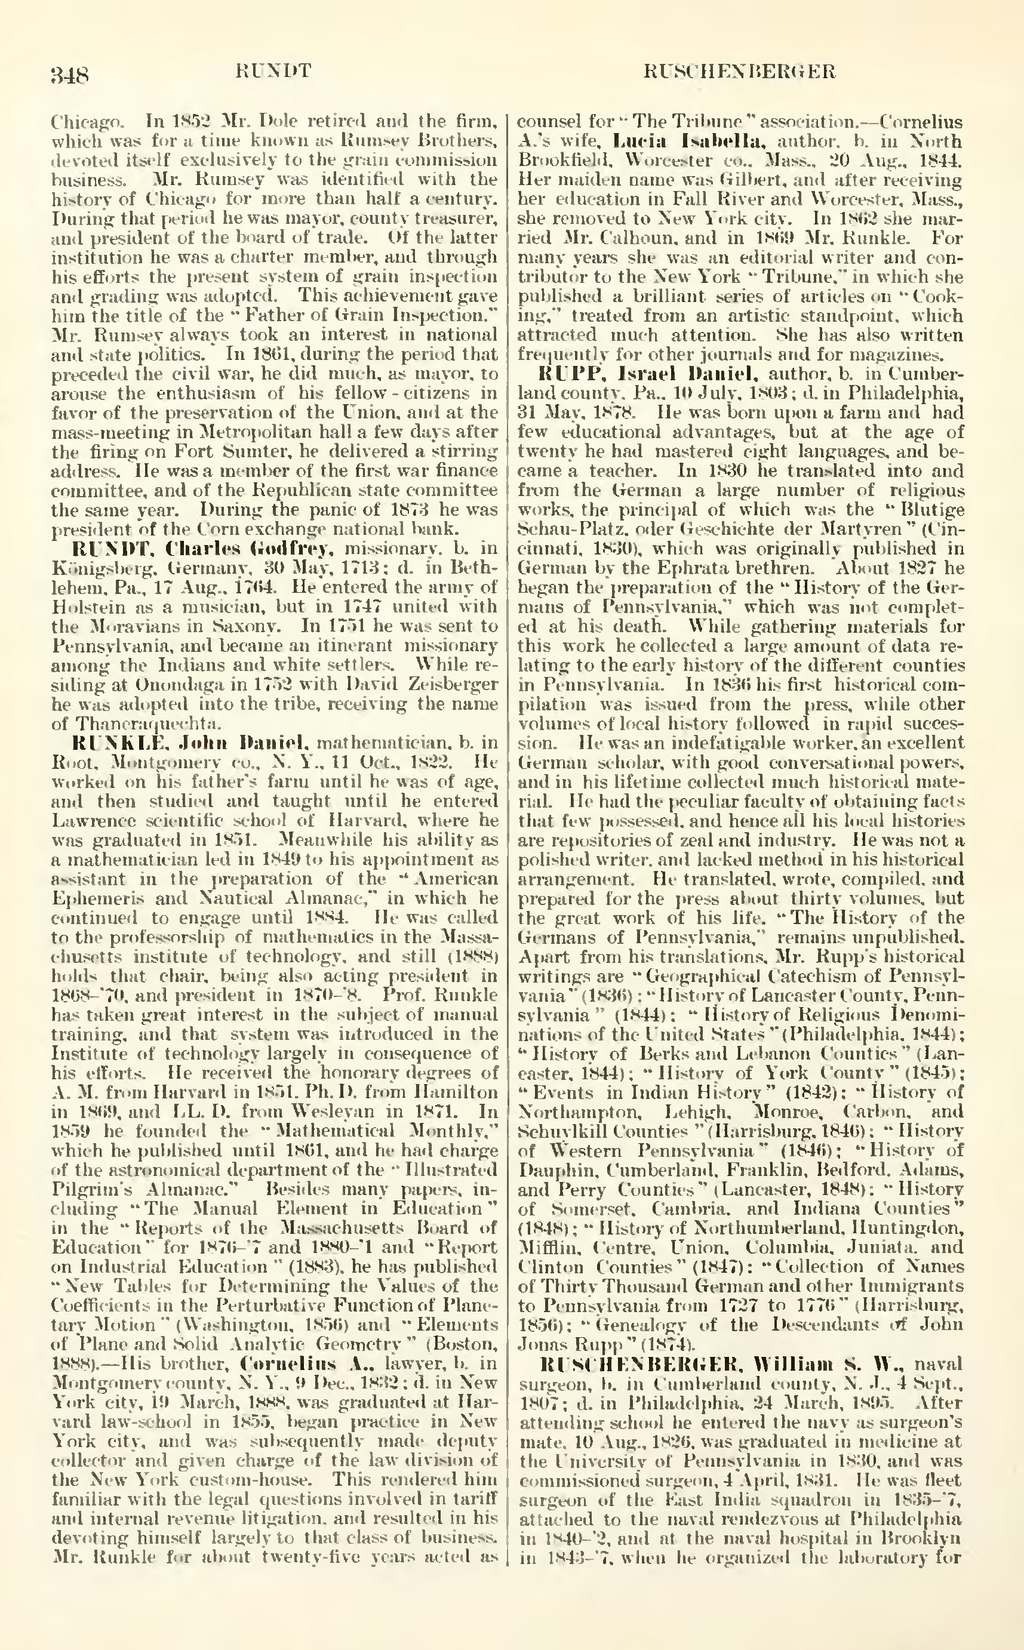 Page:Appletons' Cyclopædia of American Biography (1900